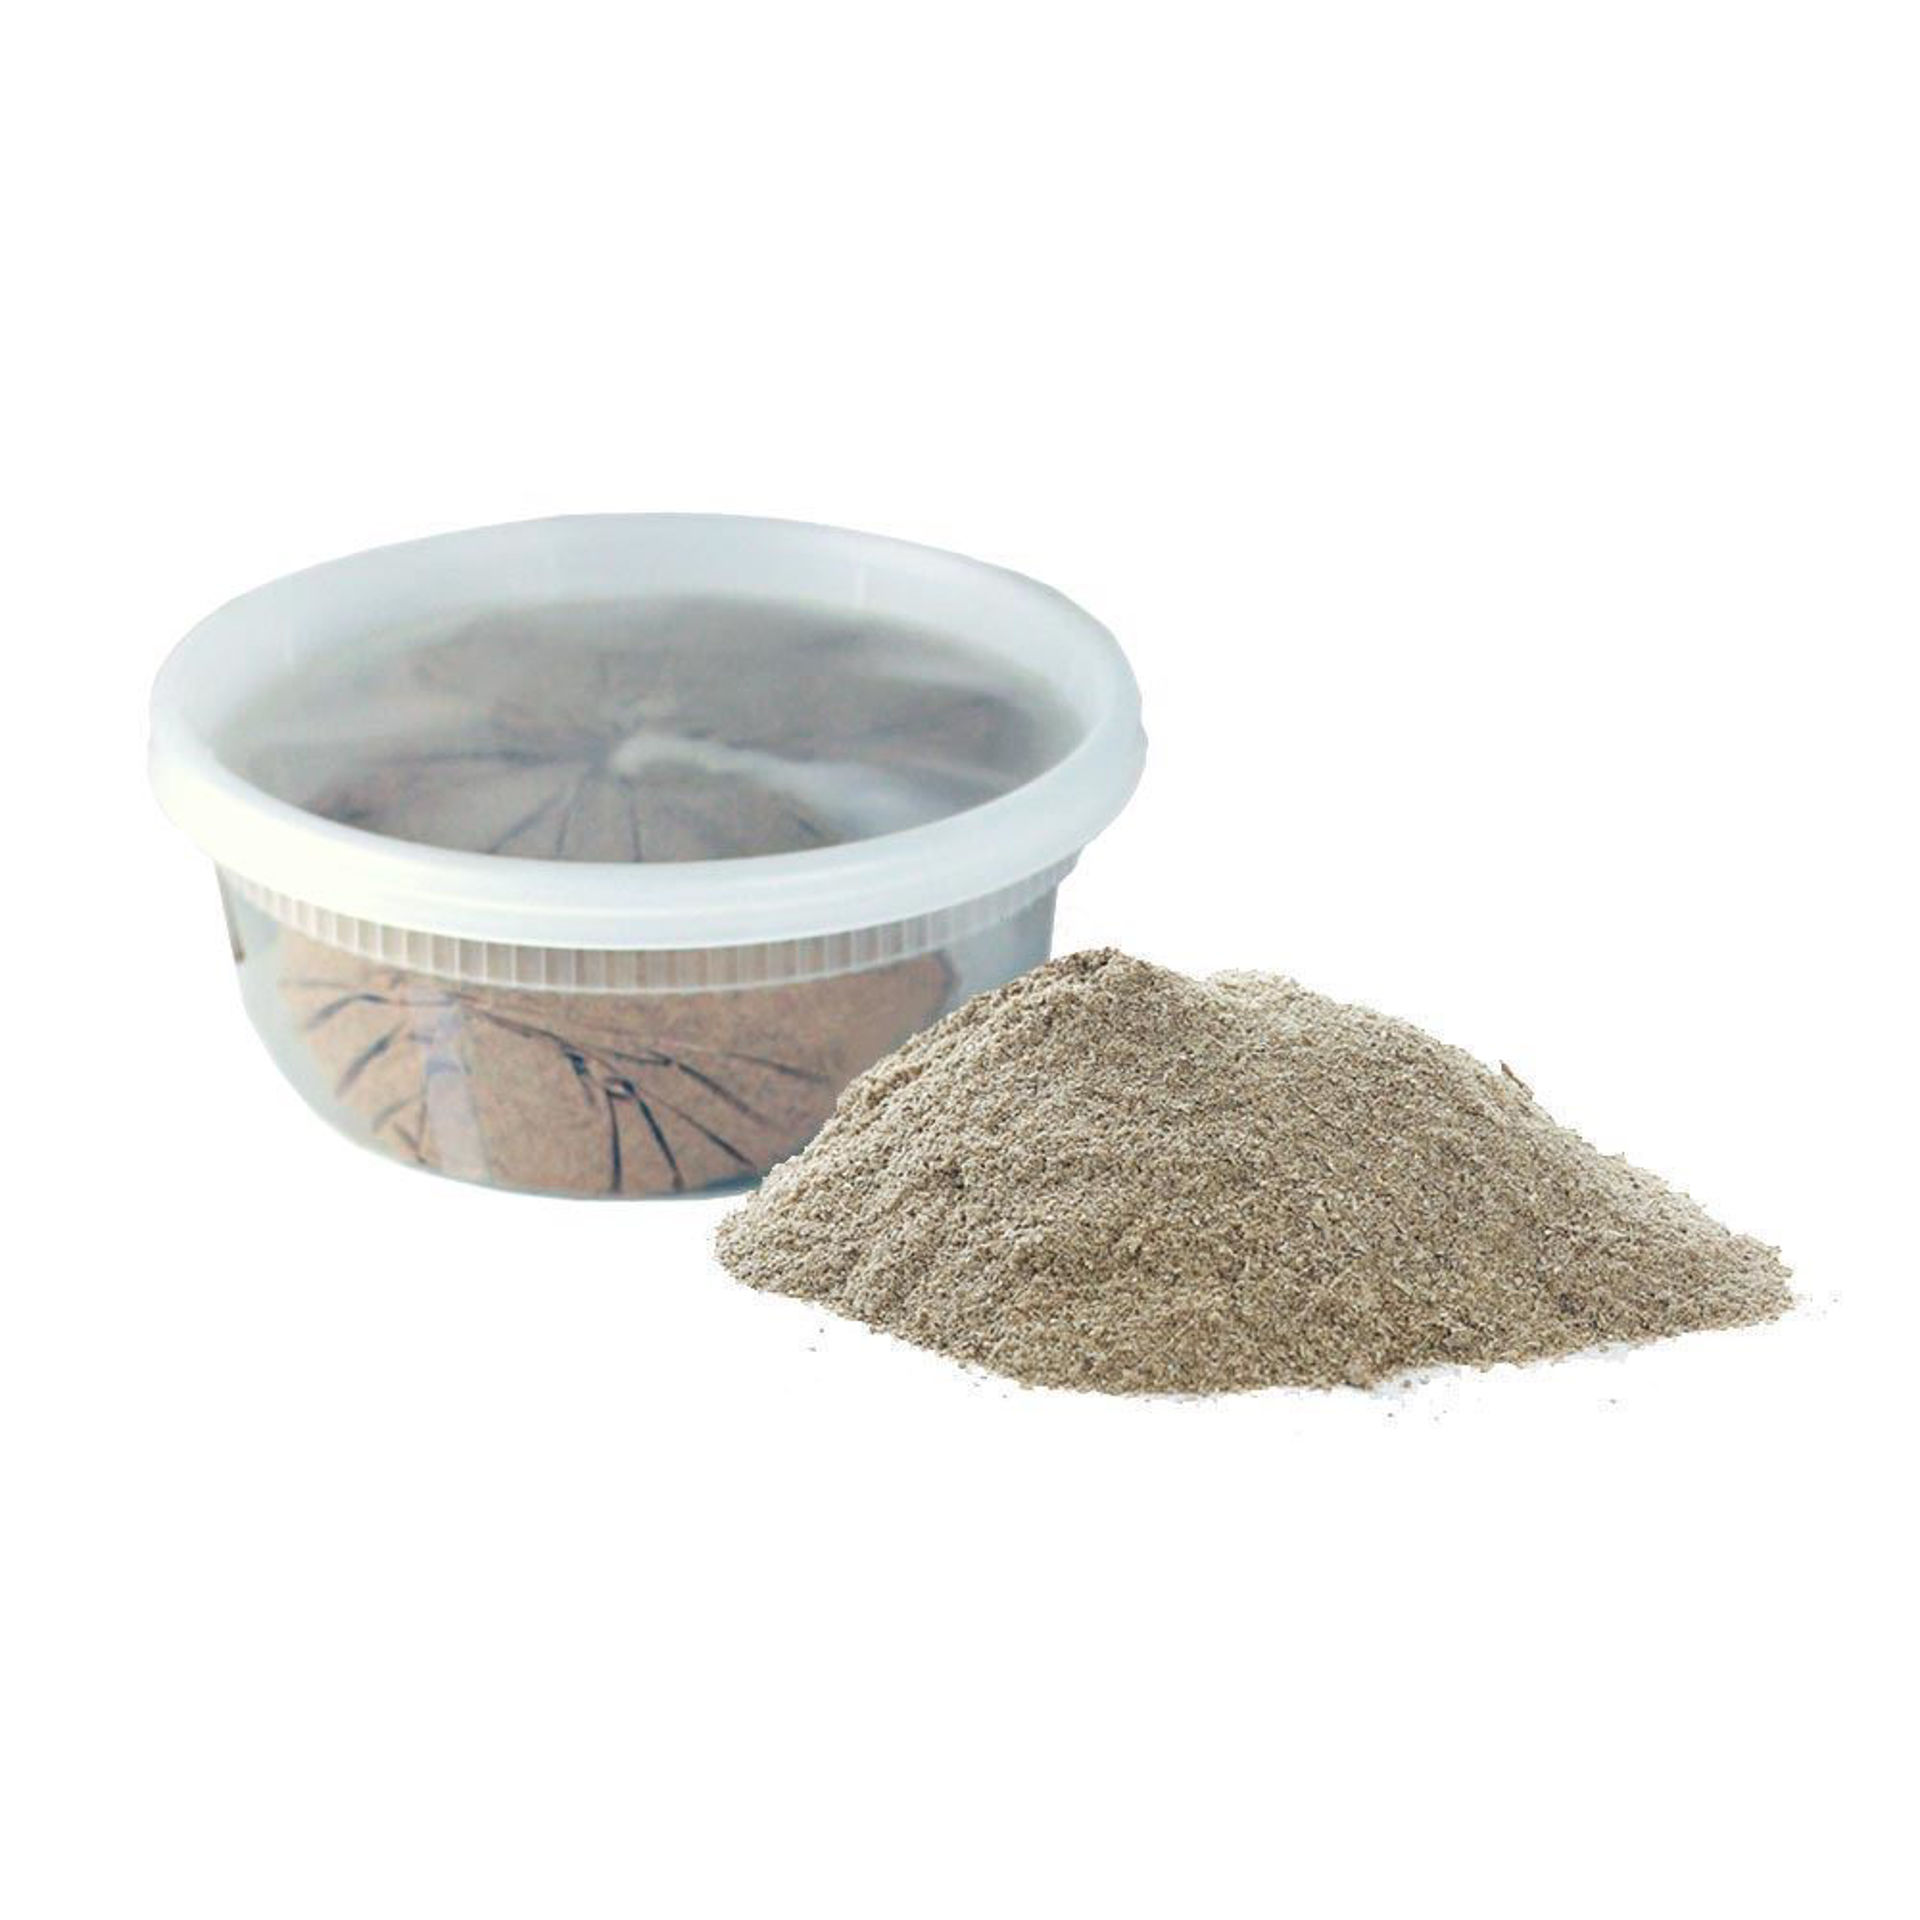 Picture of Chebe Powder - 4 oz. (113 Grams)